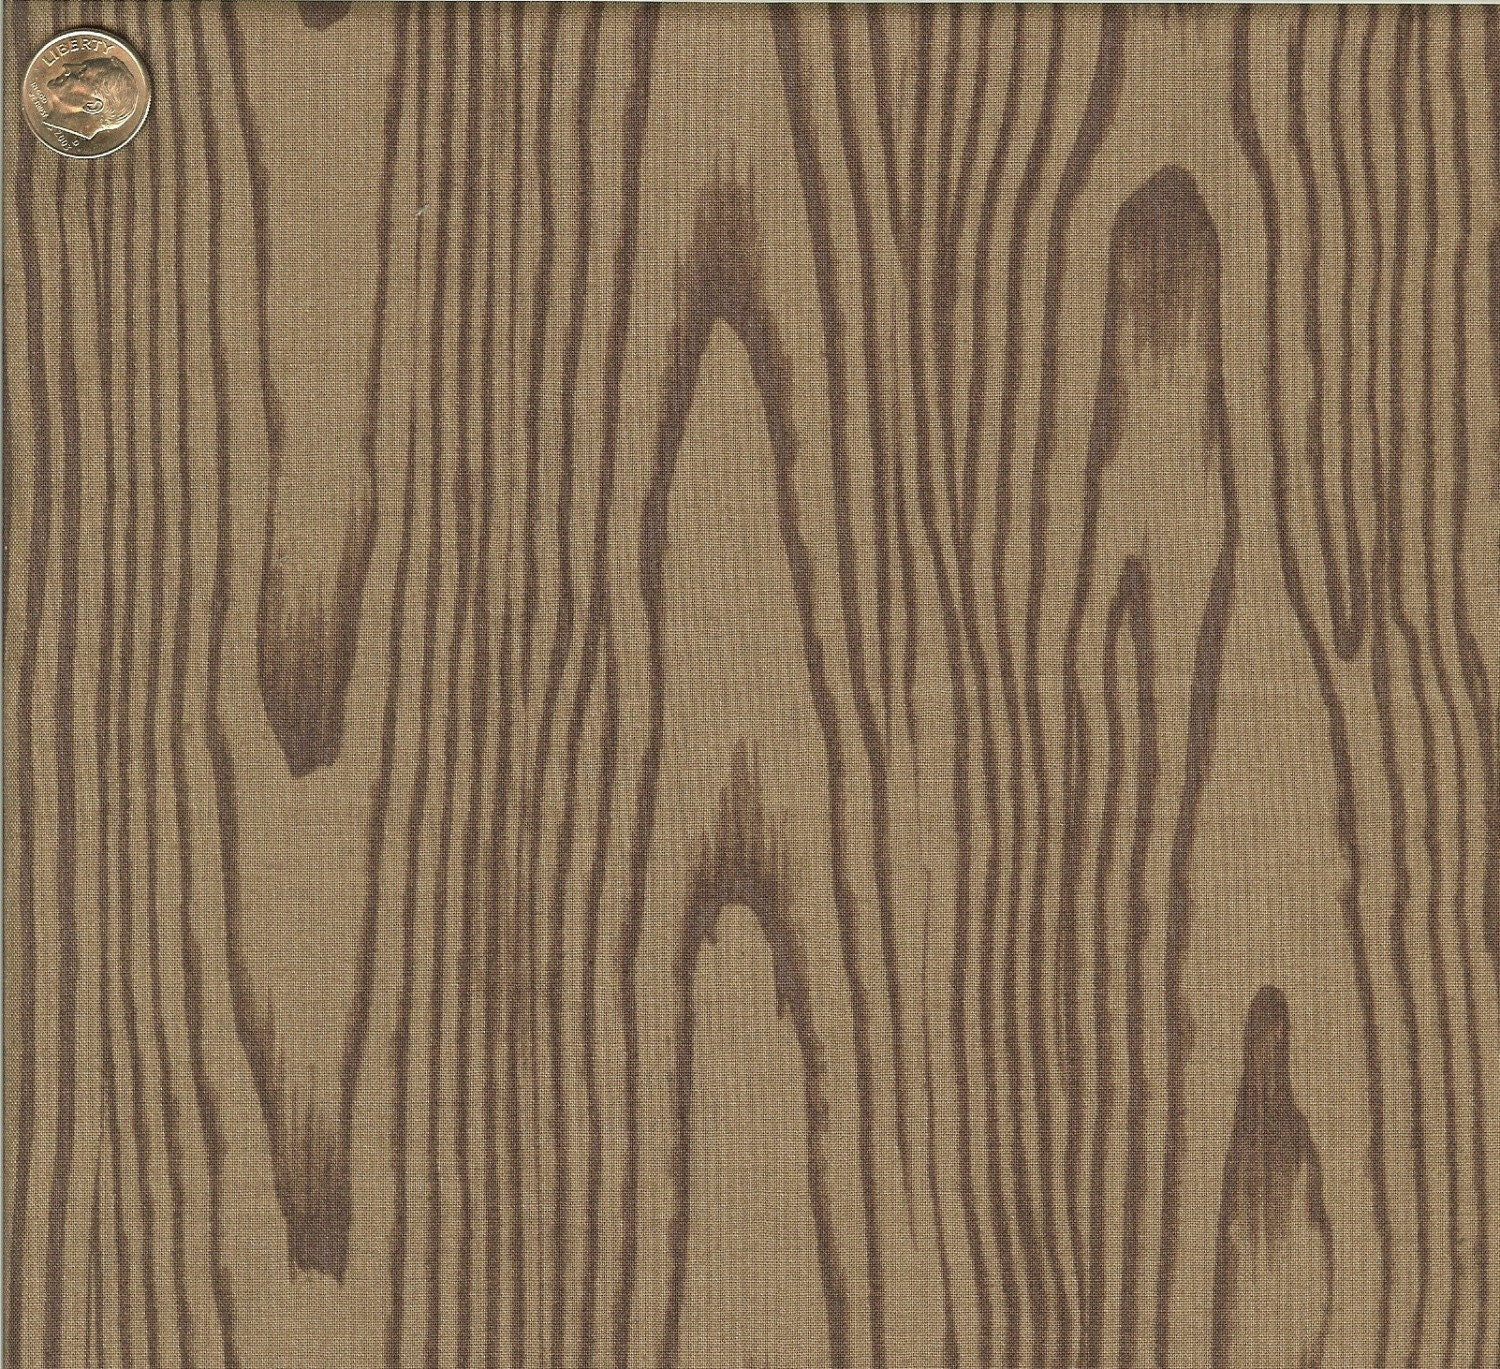 wood grain pattern fabric 2